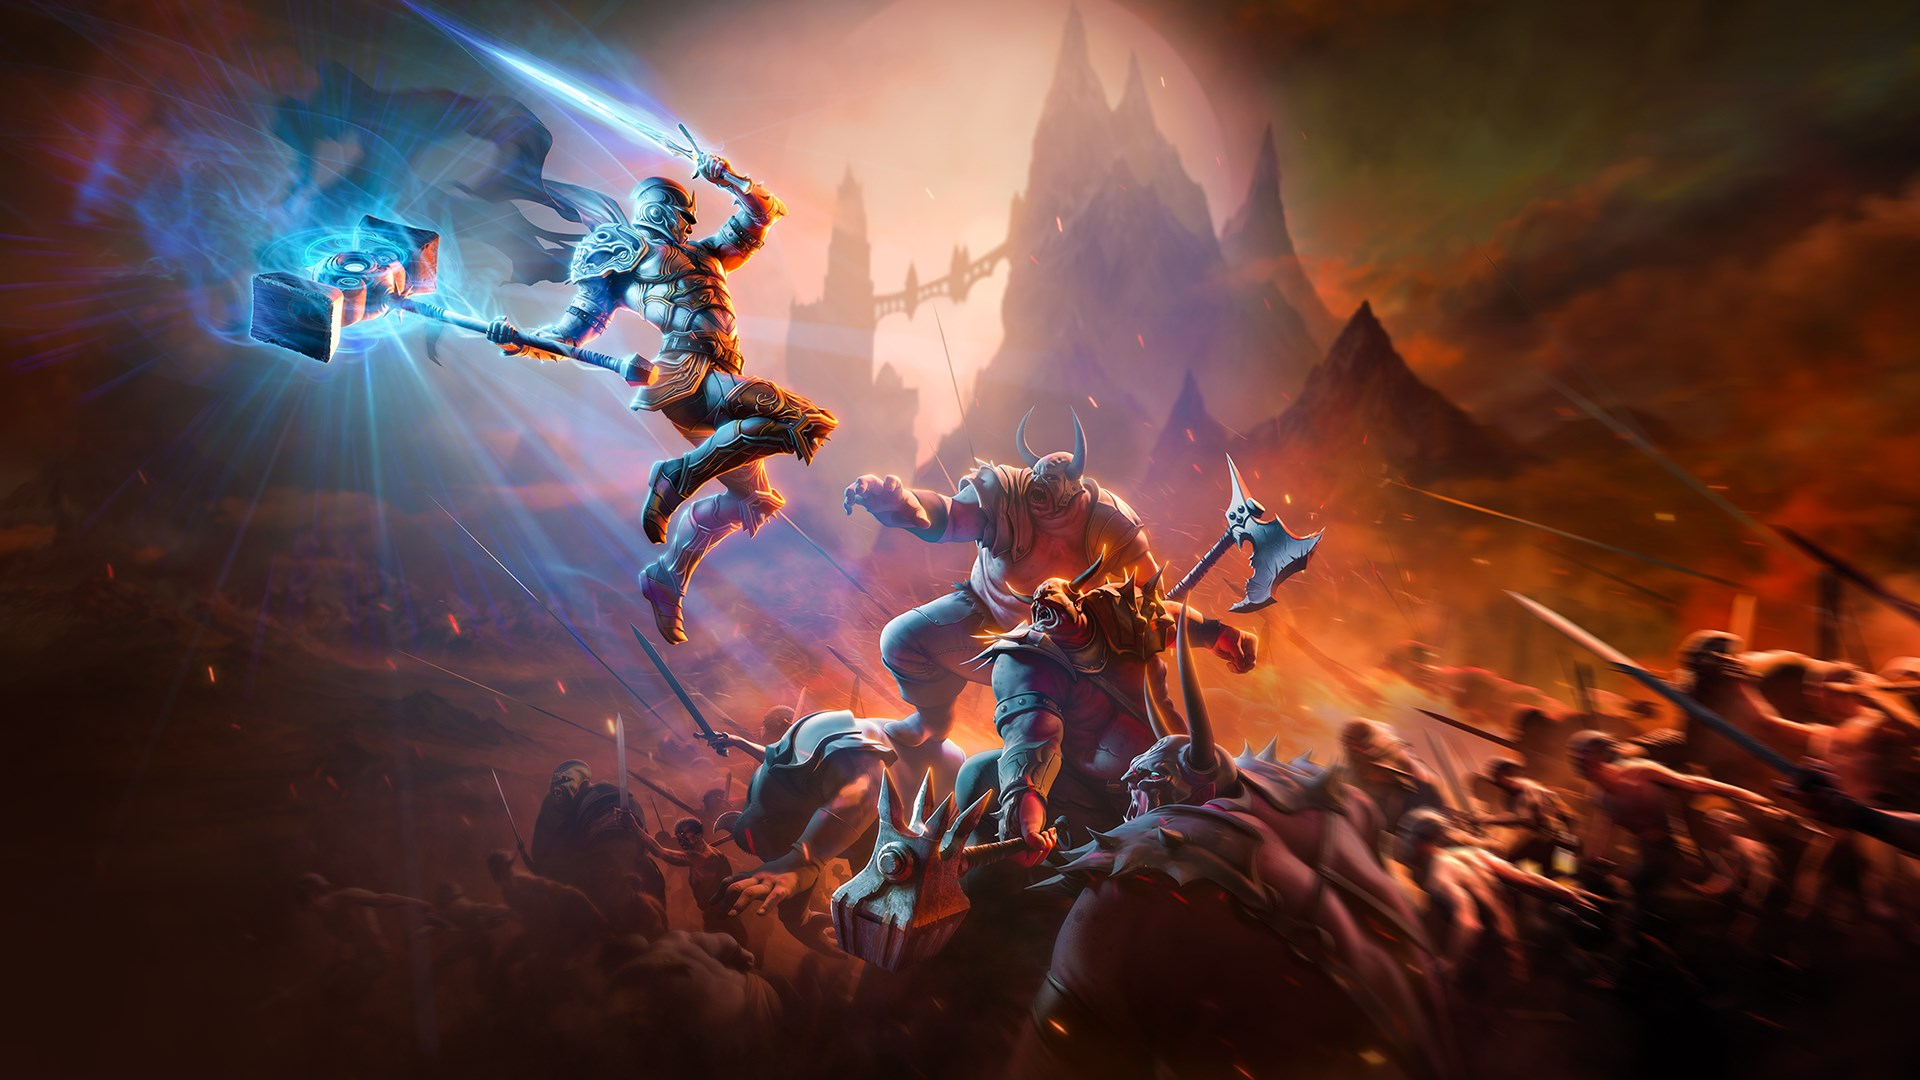 Photo of Suddenly, Kingdoms of Amalur: Re-Reckoning Appears for the Xbox One